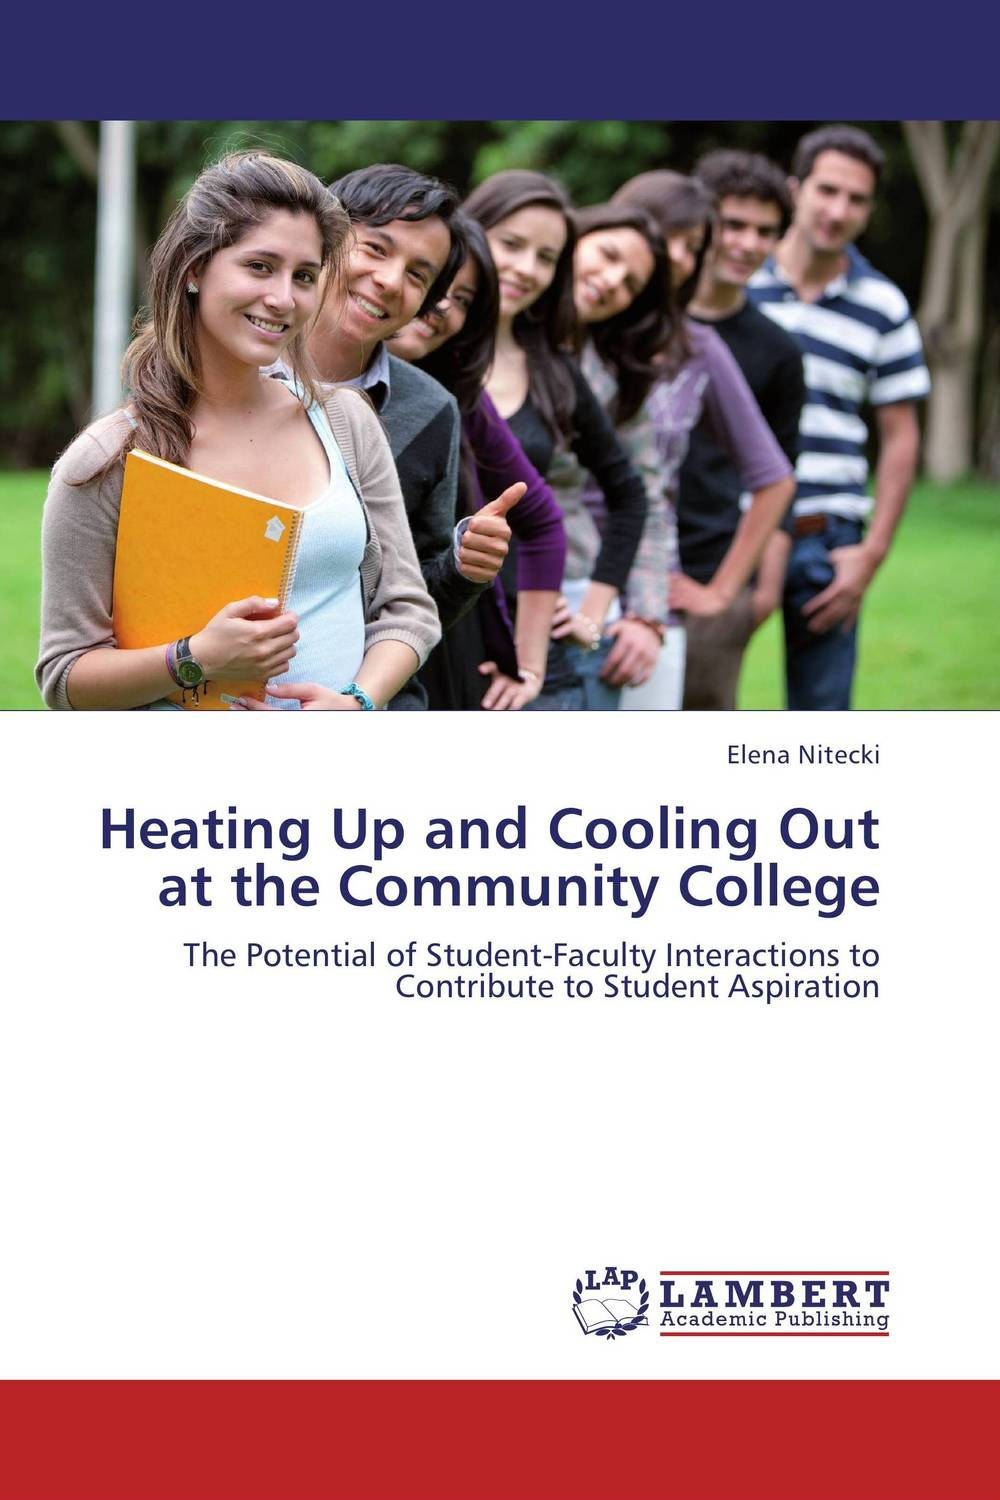 Heating Up and Cooling Out at the Community College